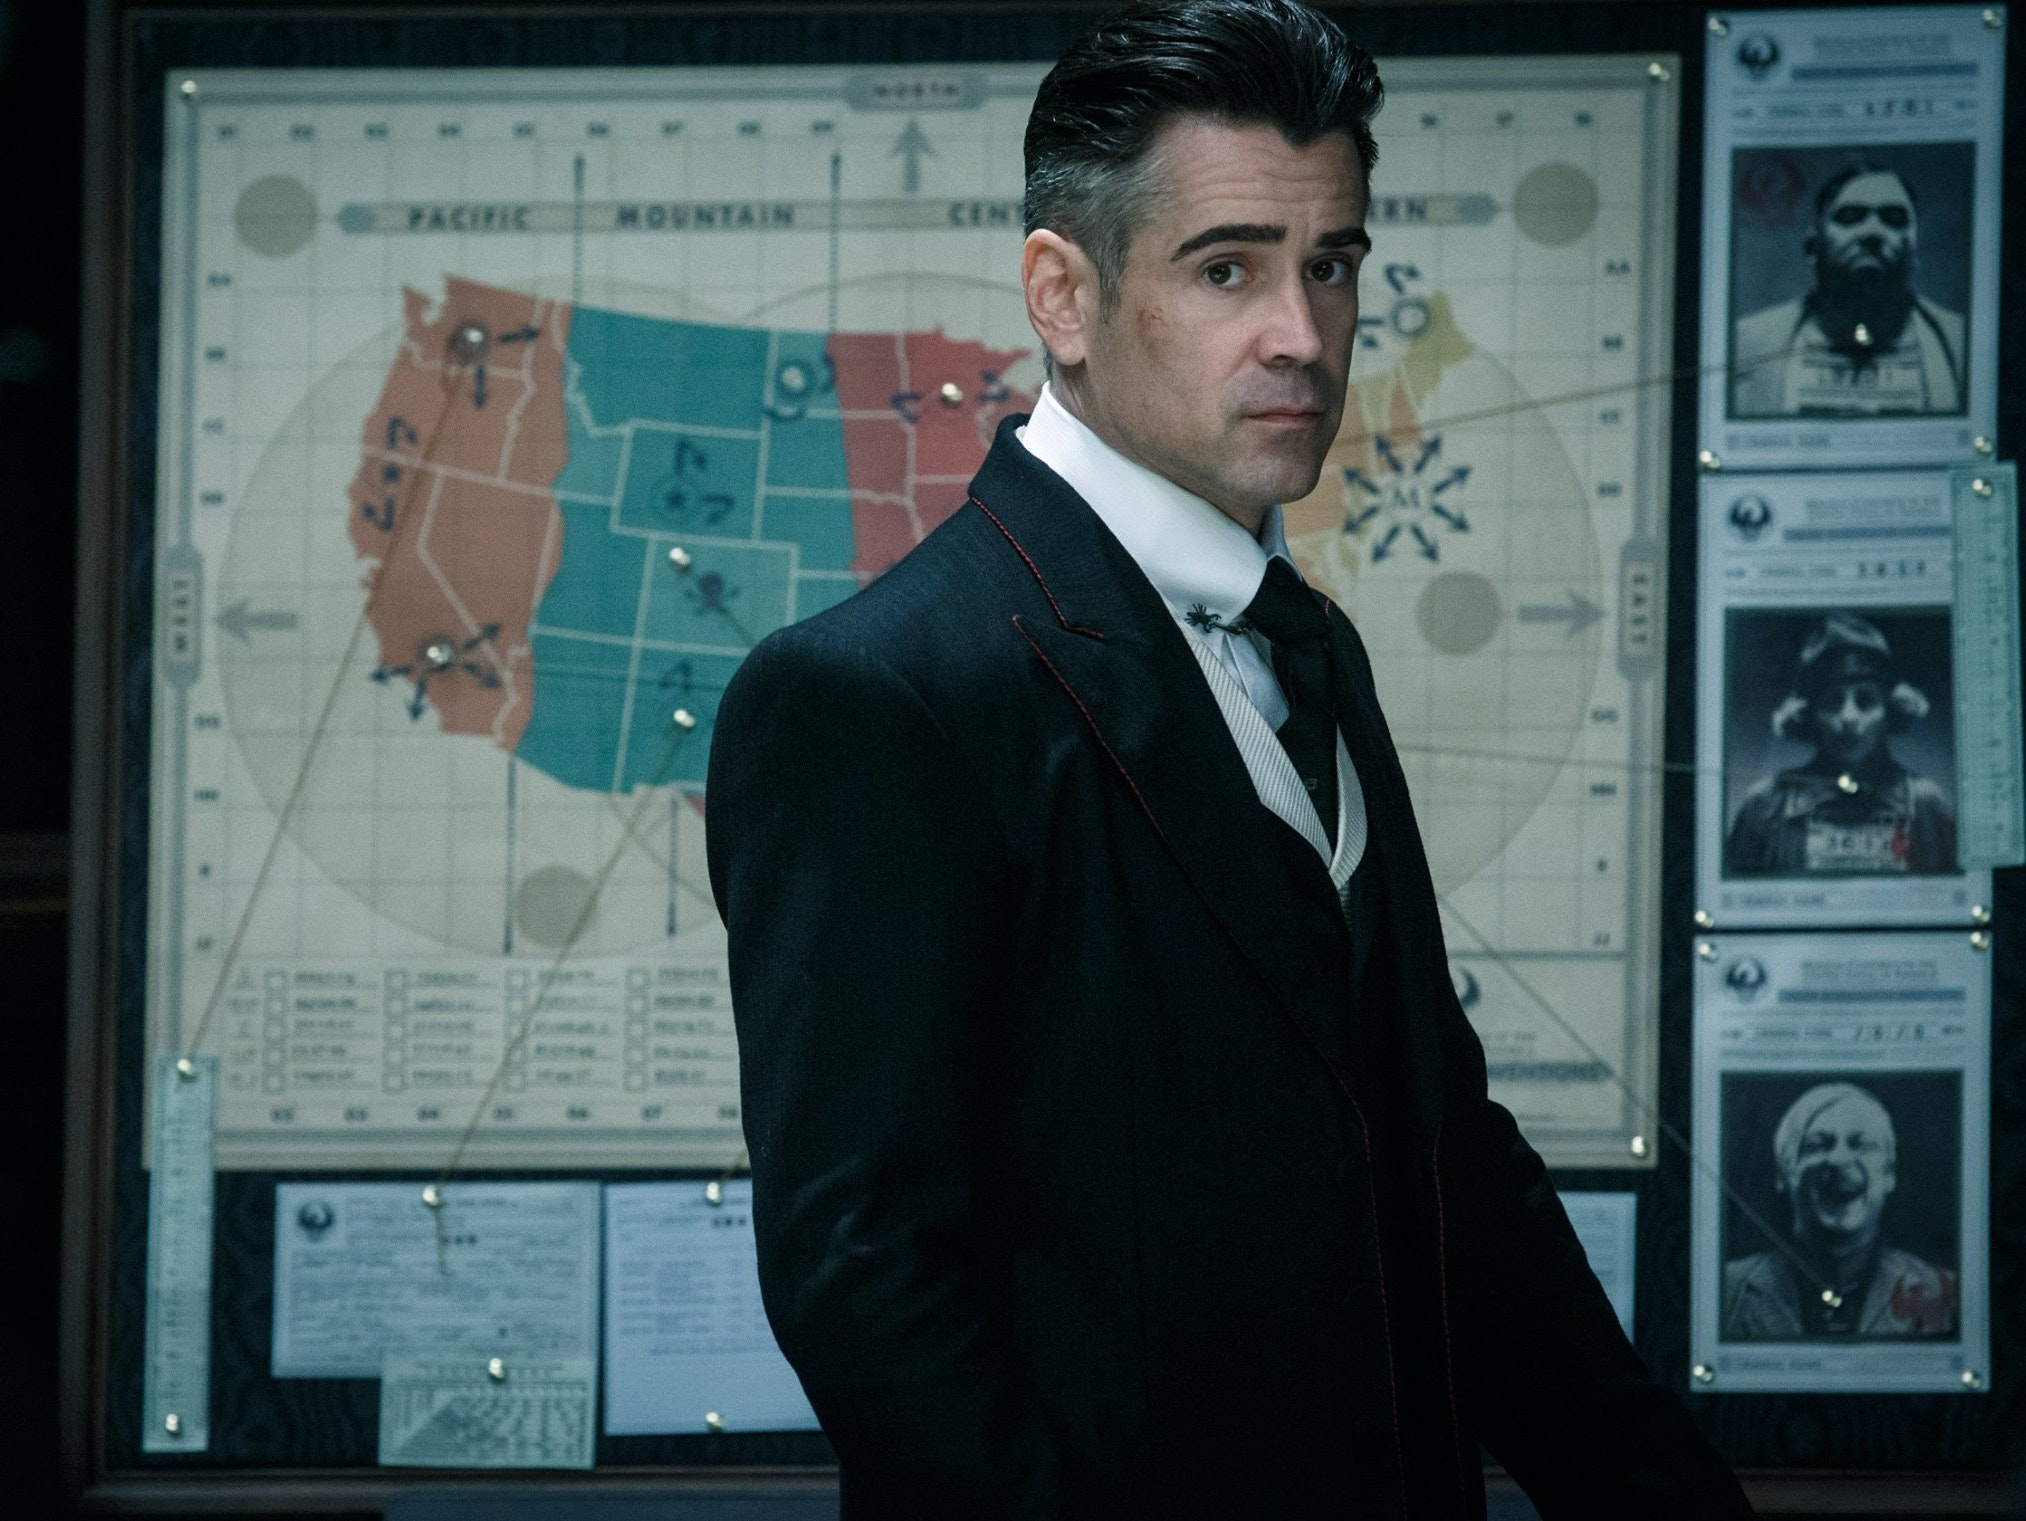 Colin Farrell as Percival Graves/ Grindelwald